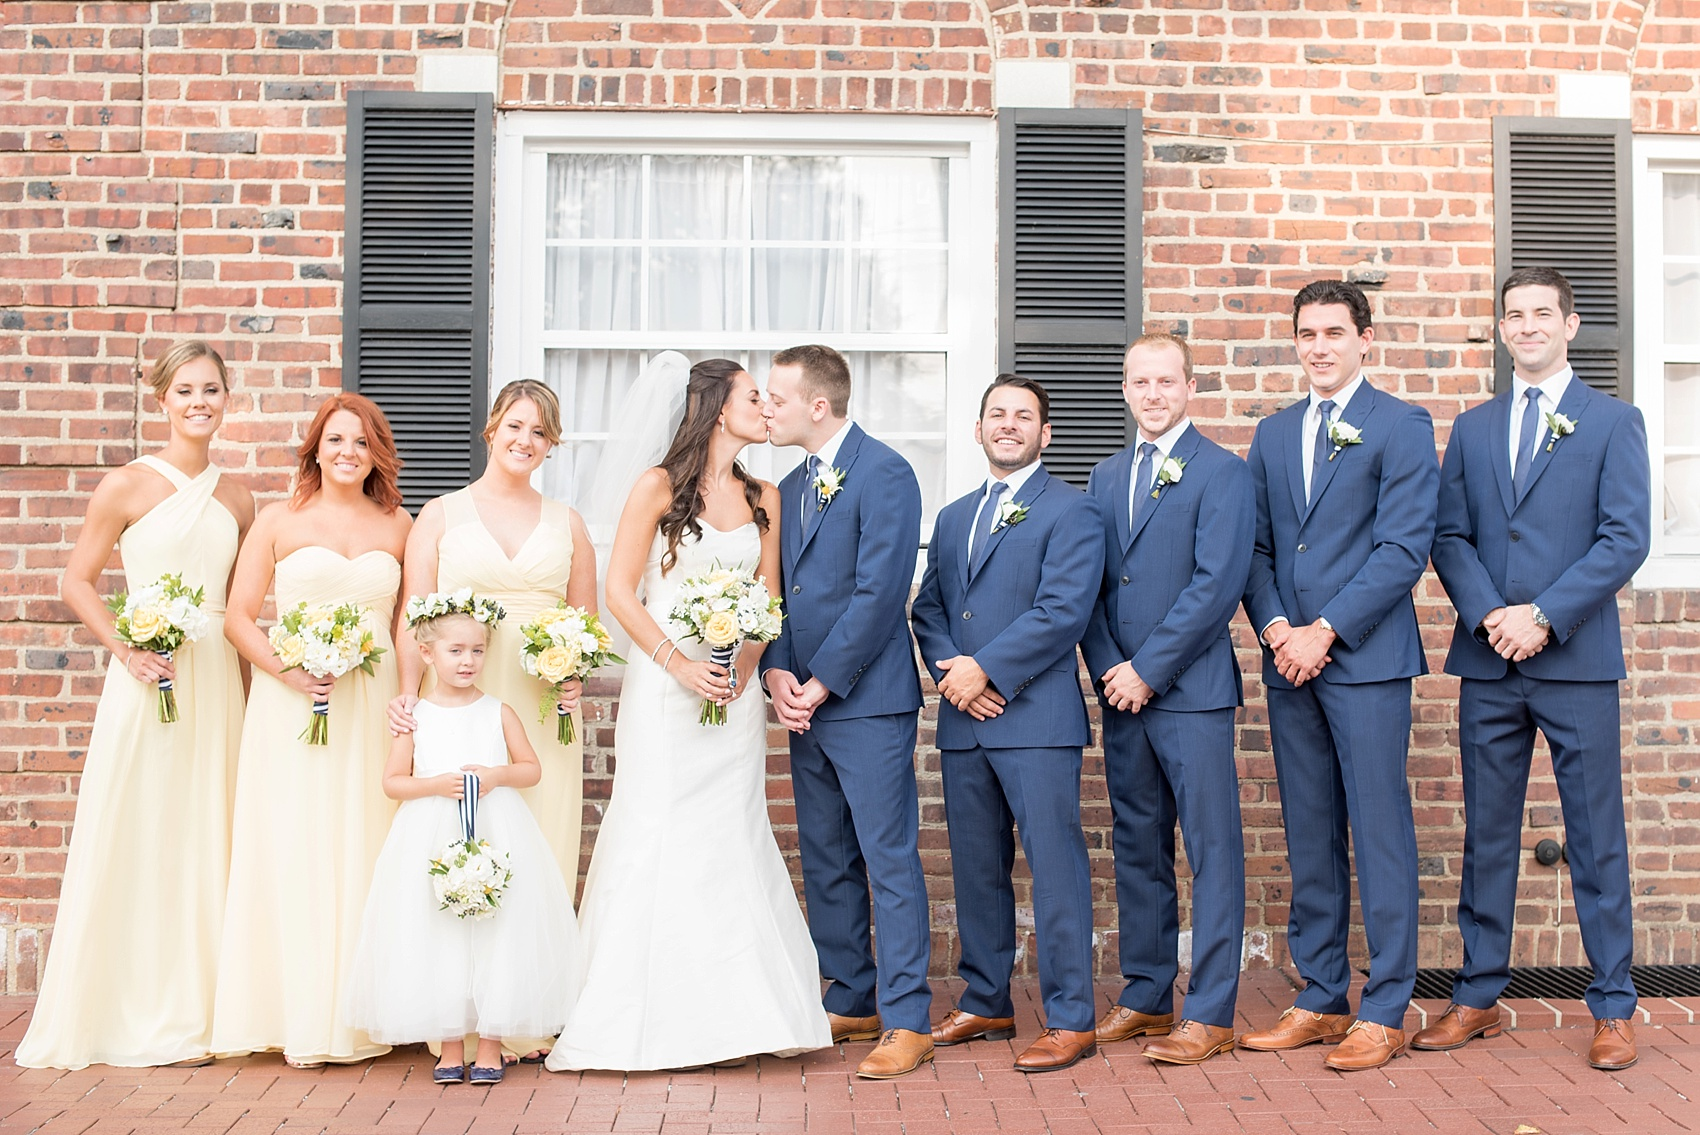 Wedding party in navy blue suits and yellow chiffon dresses for the groomsmen and bridesmaids in New Jersey for this nautical wedding at the Molly Pitcher Inn. Photo by Mikkel Paige Photography.